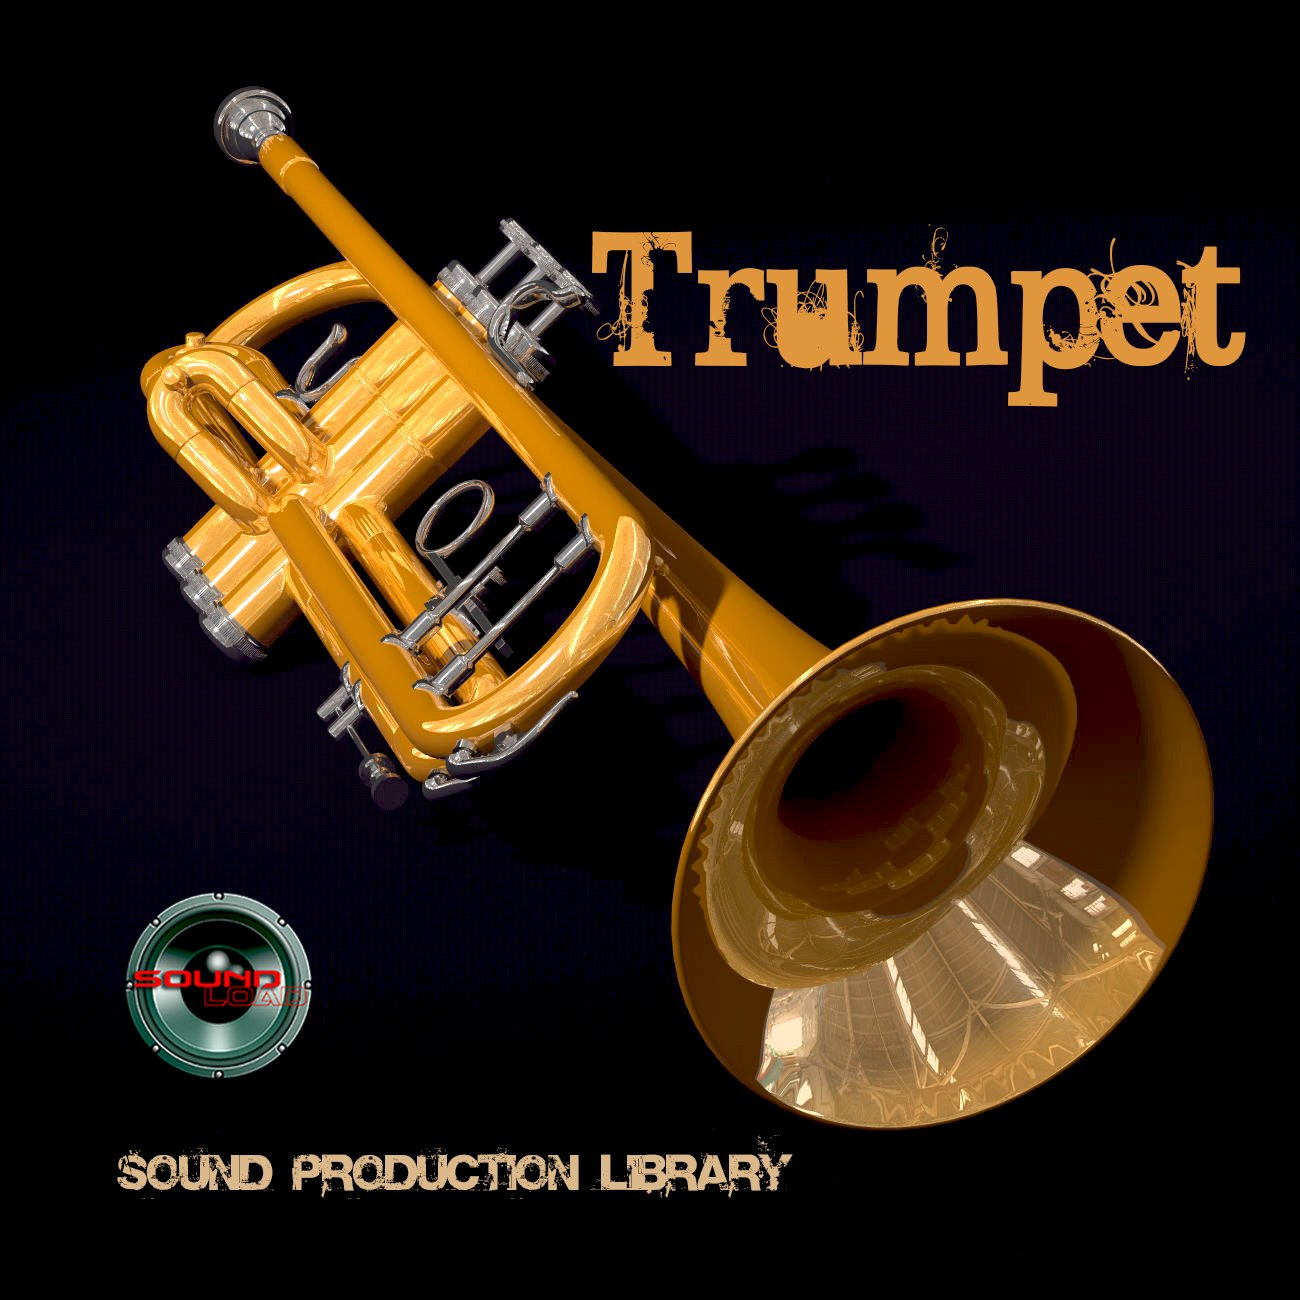 FRENCH HORN REAL - Large Unique 24bit WAVE/KONTAKT Multi-Layer Studio Samples Production Library over 16GB on 3 DVD or download by SoundLoad (Image #5)